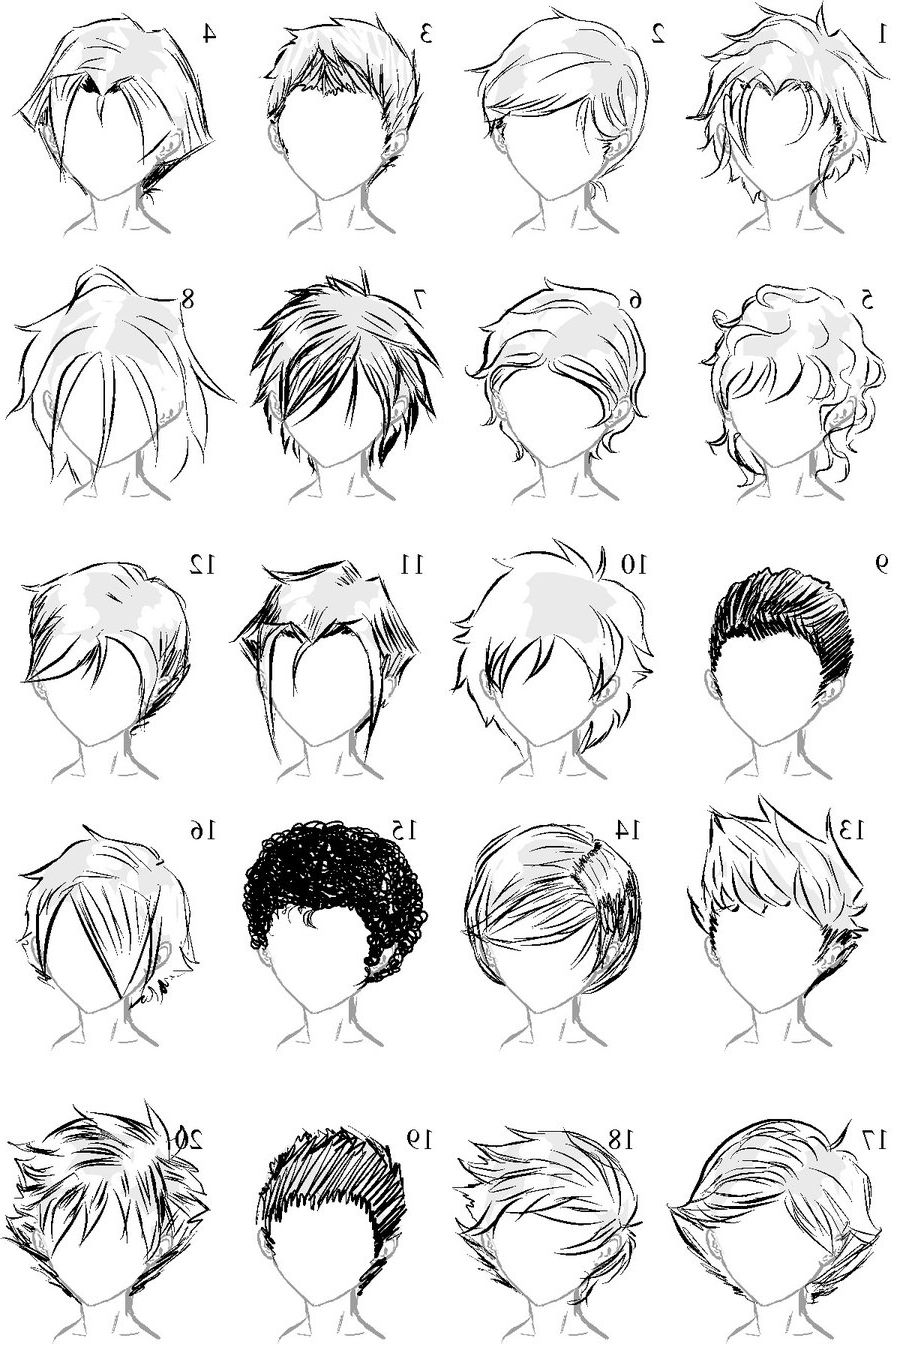 Male Anime Hairstyles Drawing At Paintingvalleycom Explore Anime Boy Hair Anime Hair Anime Hairstyles Male